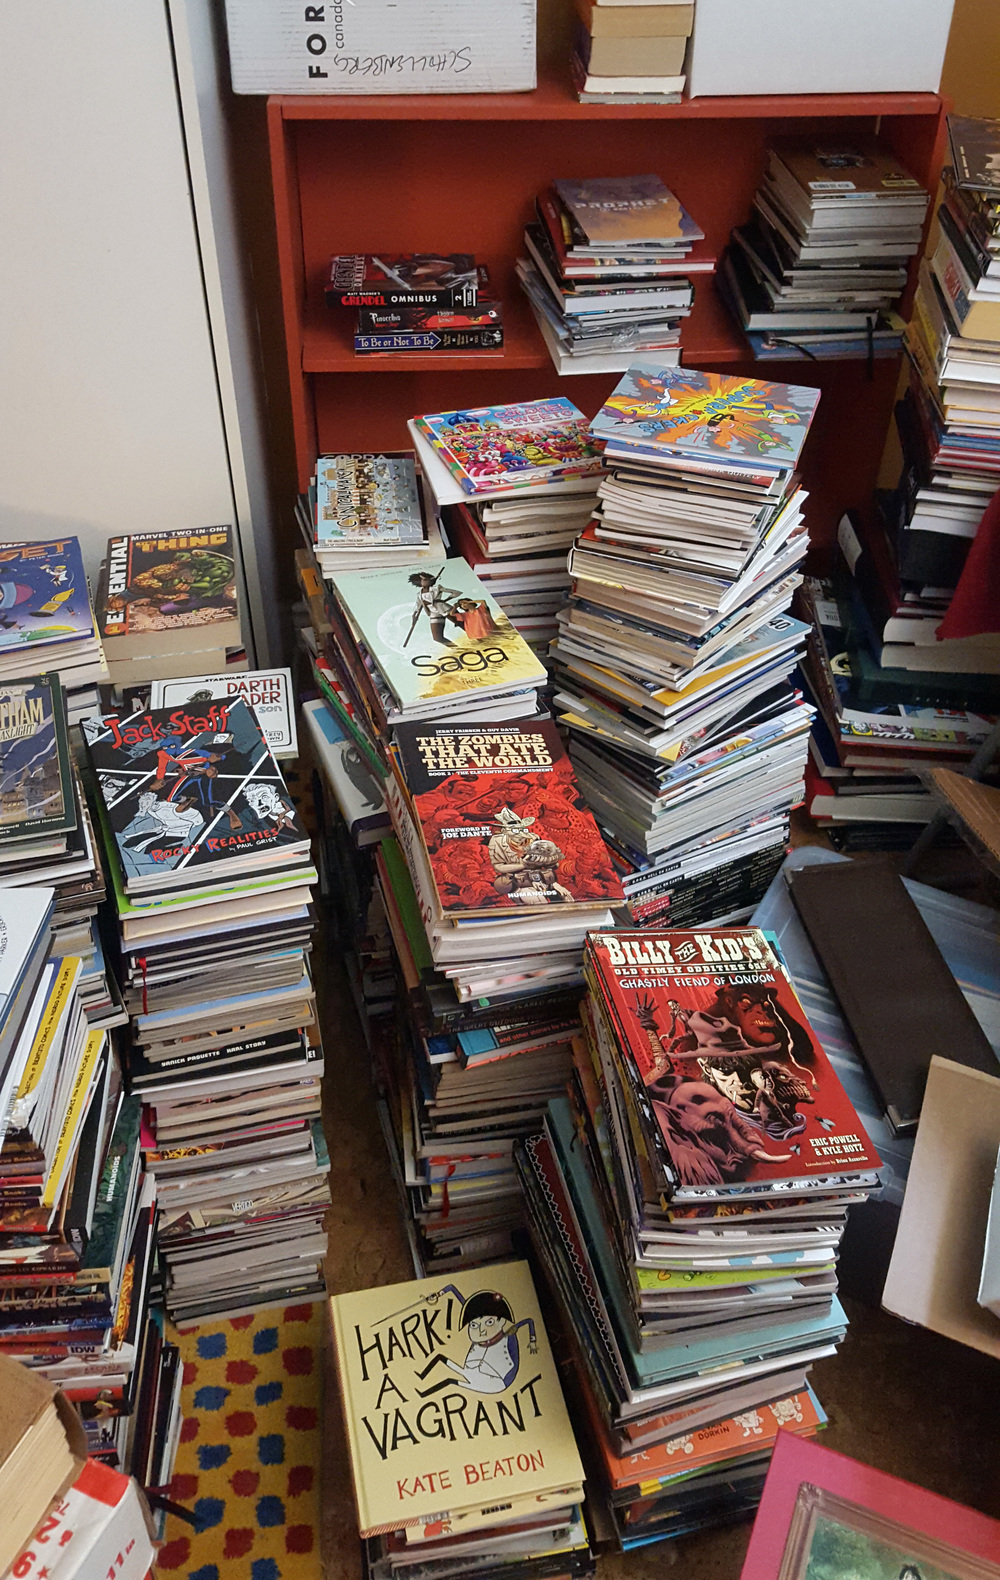 For reference: those stacks are waist high.